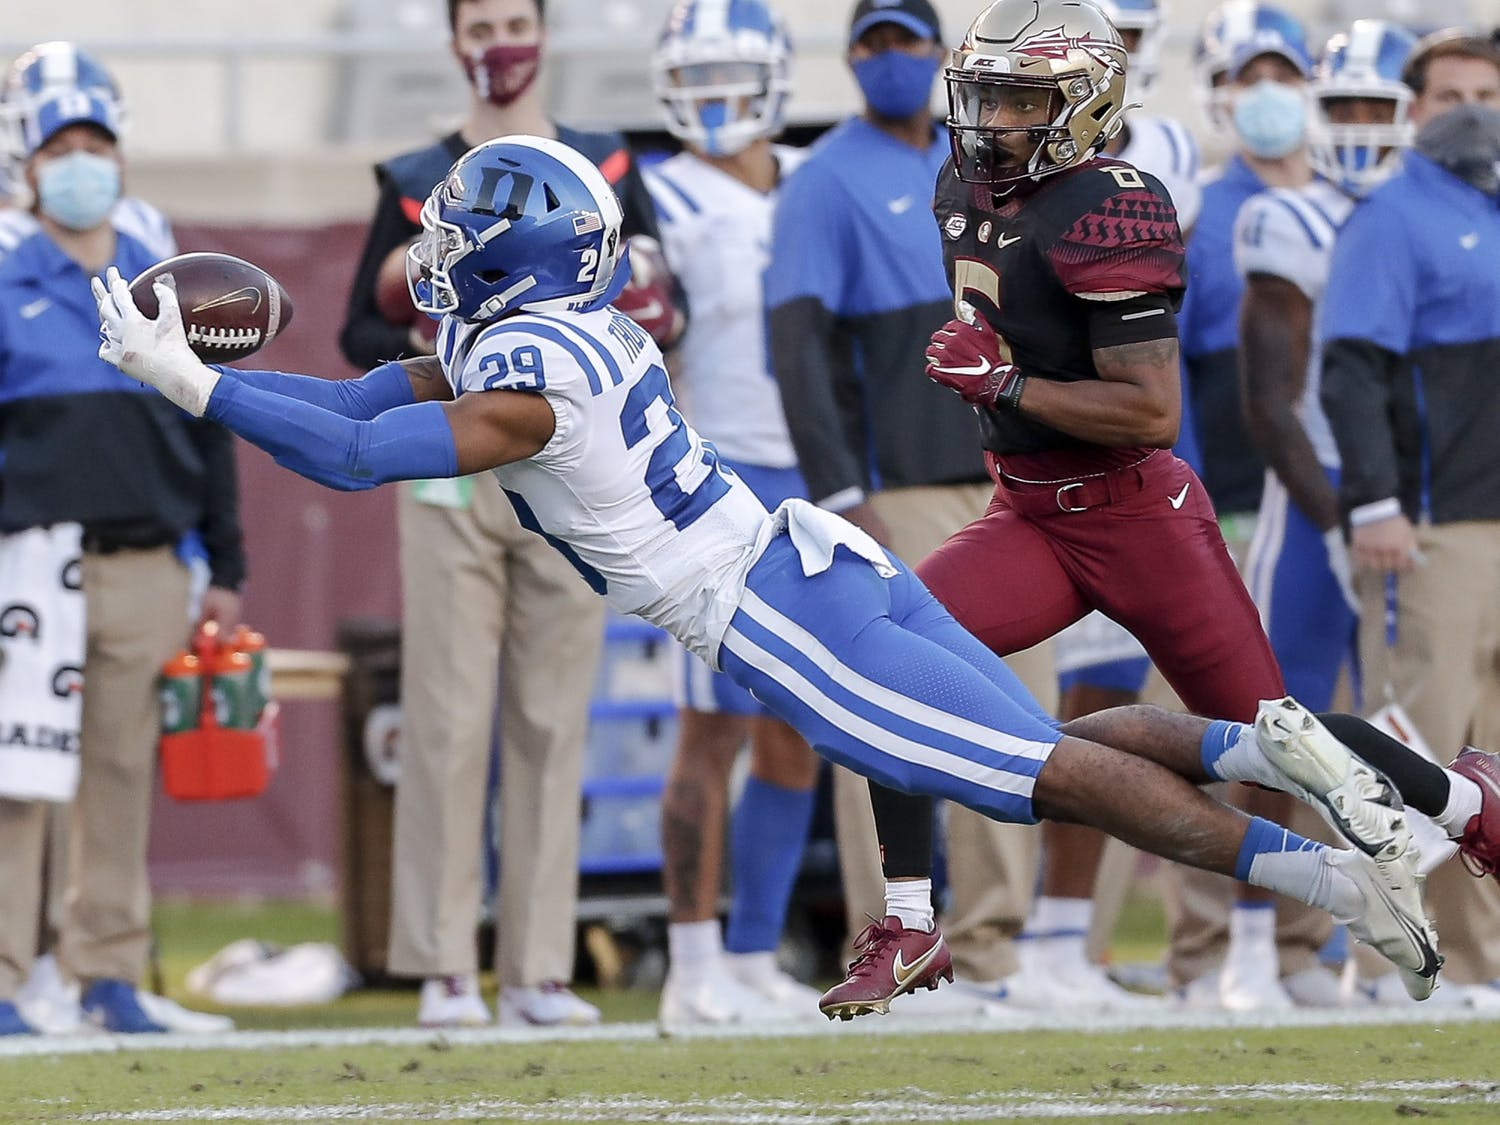 Despite two turnovers, including this diving interception, forced by safety Nate Thompson, Duke was unable to stop Florida State's offense from putting points on the board.